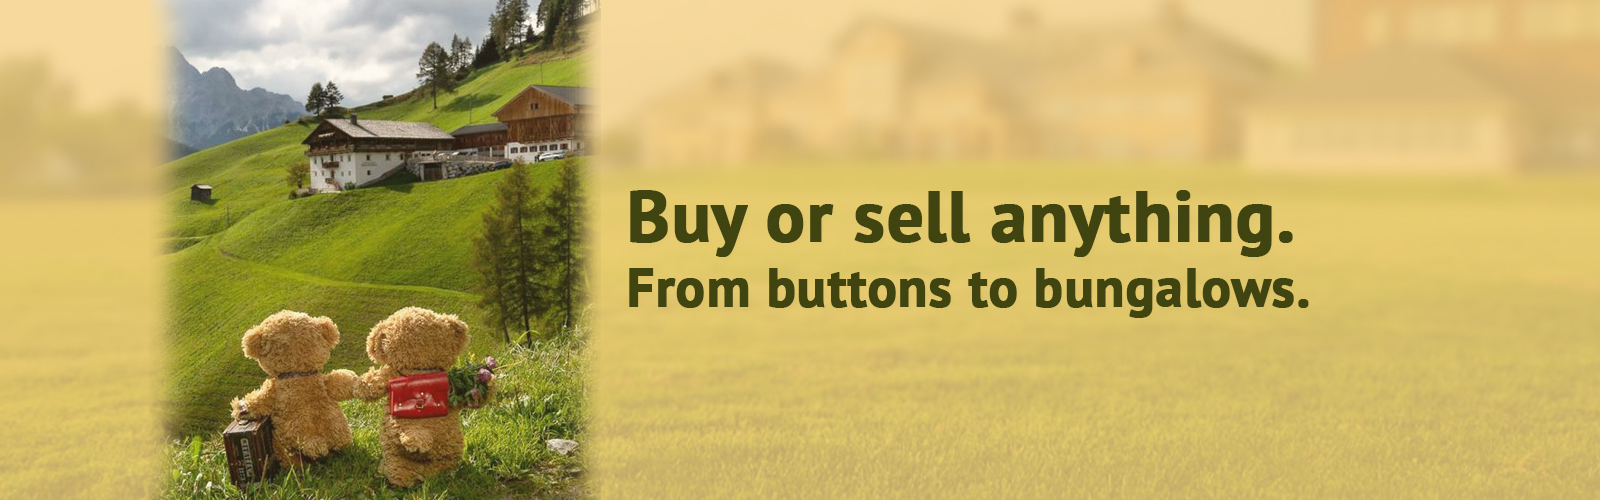 Buy or sell anything. From a button to a bungalow.